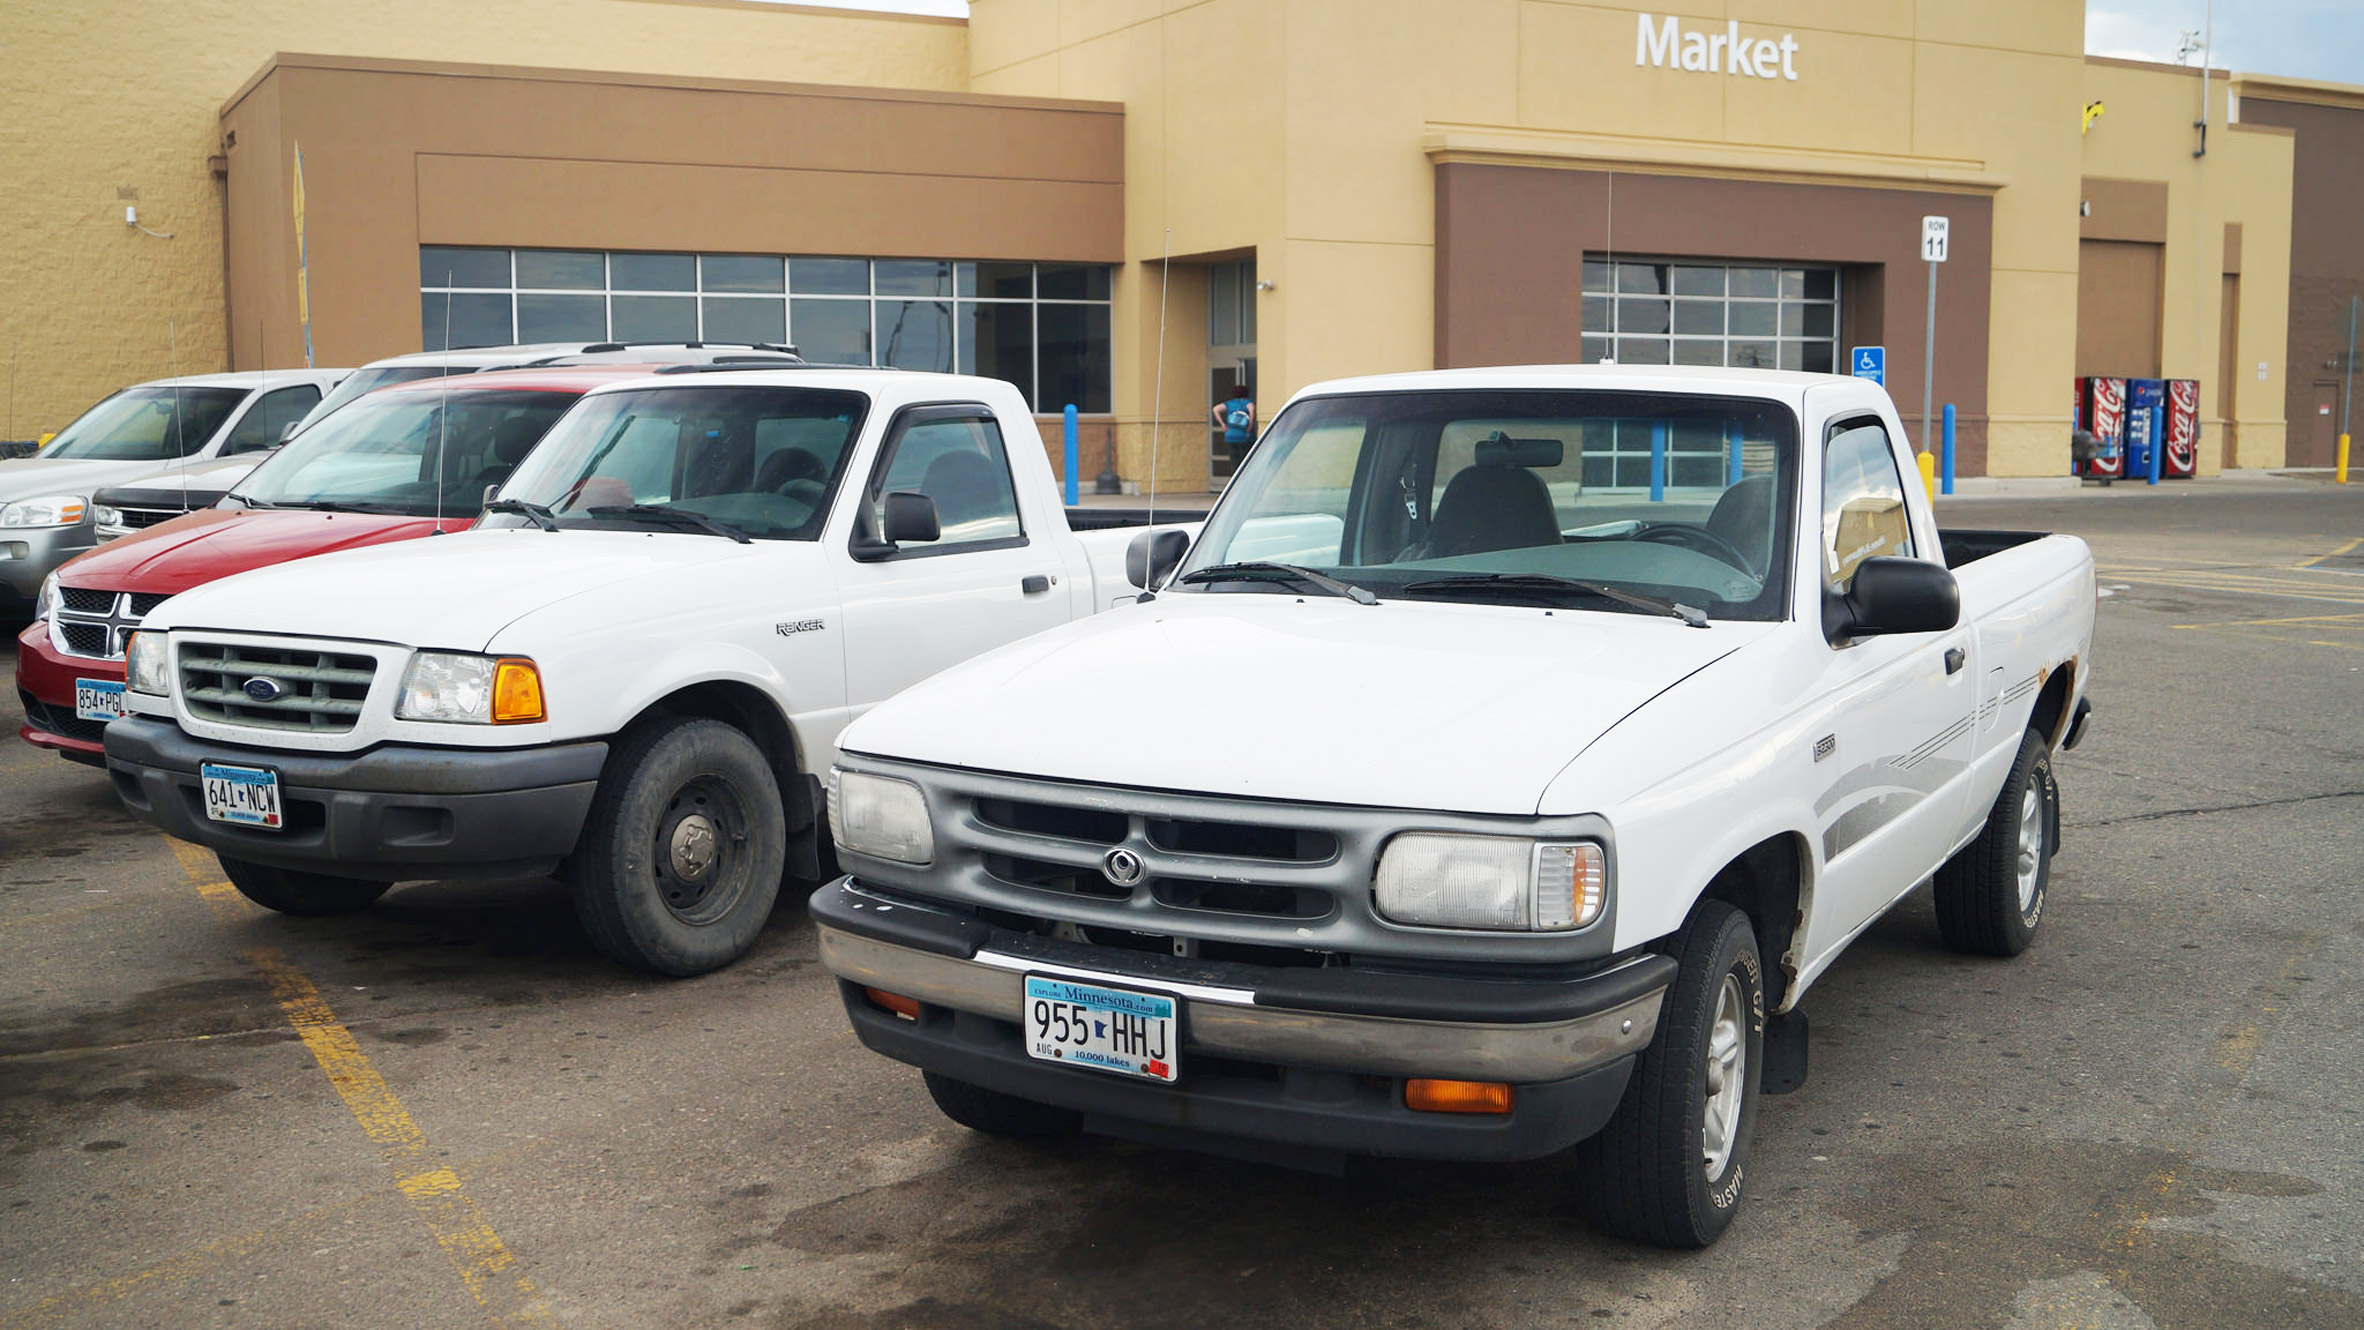 Pick-up trucks